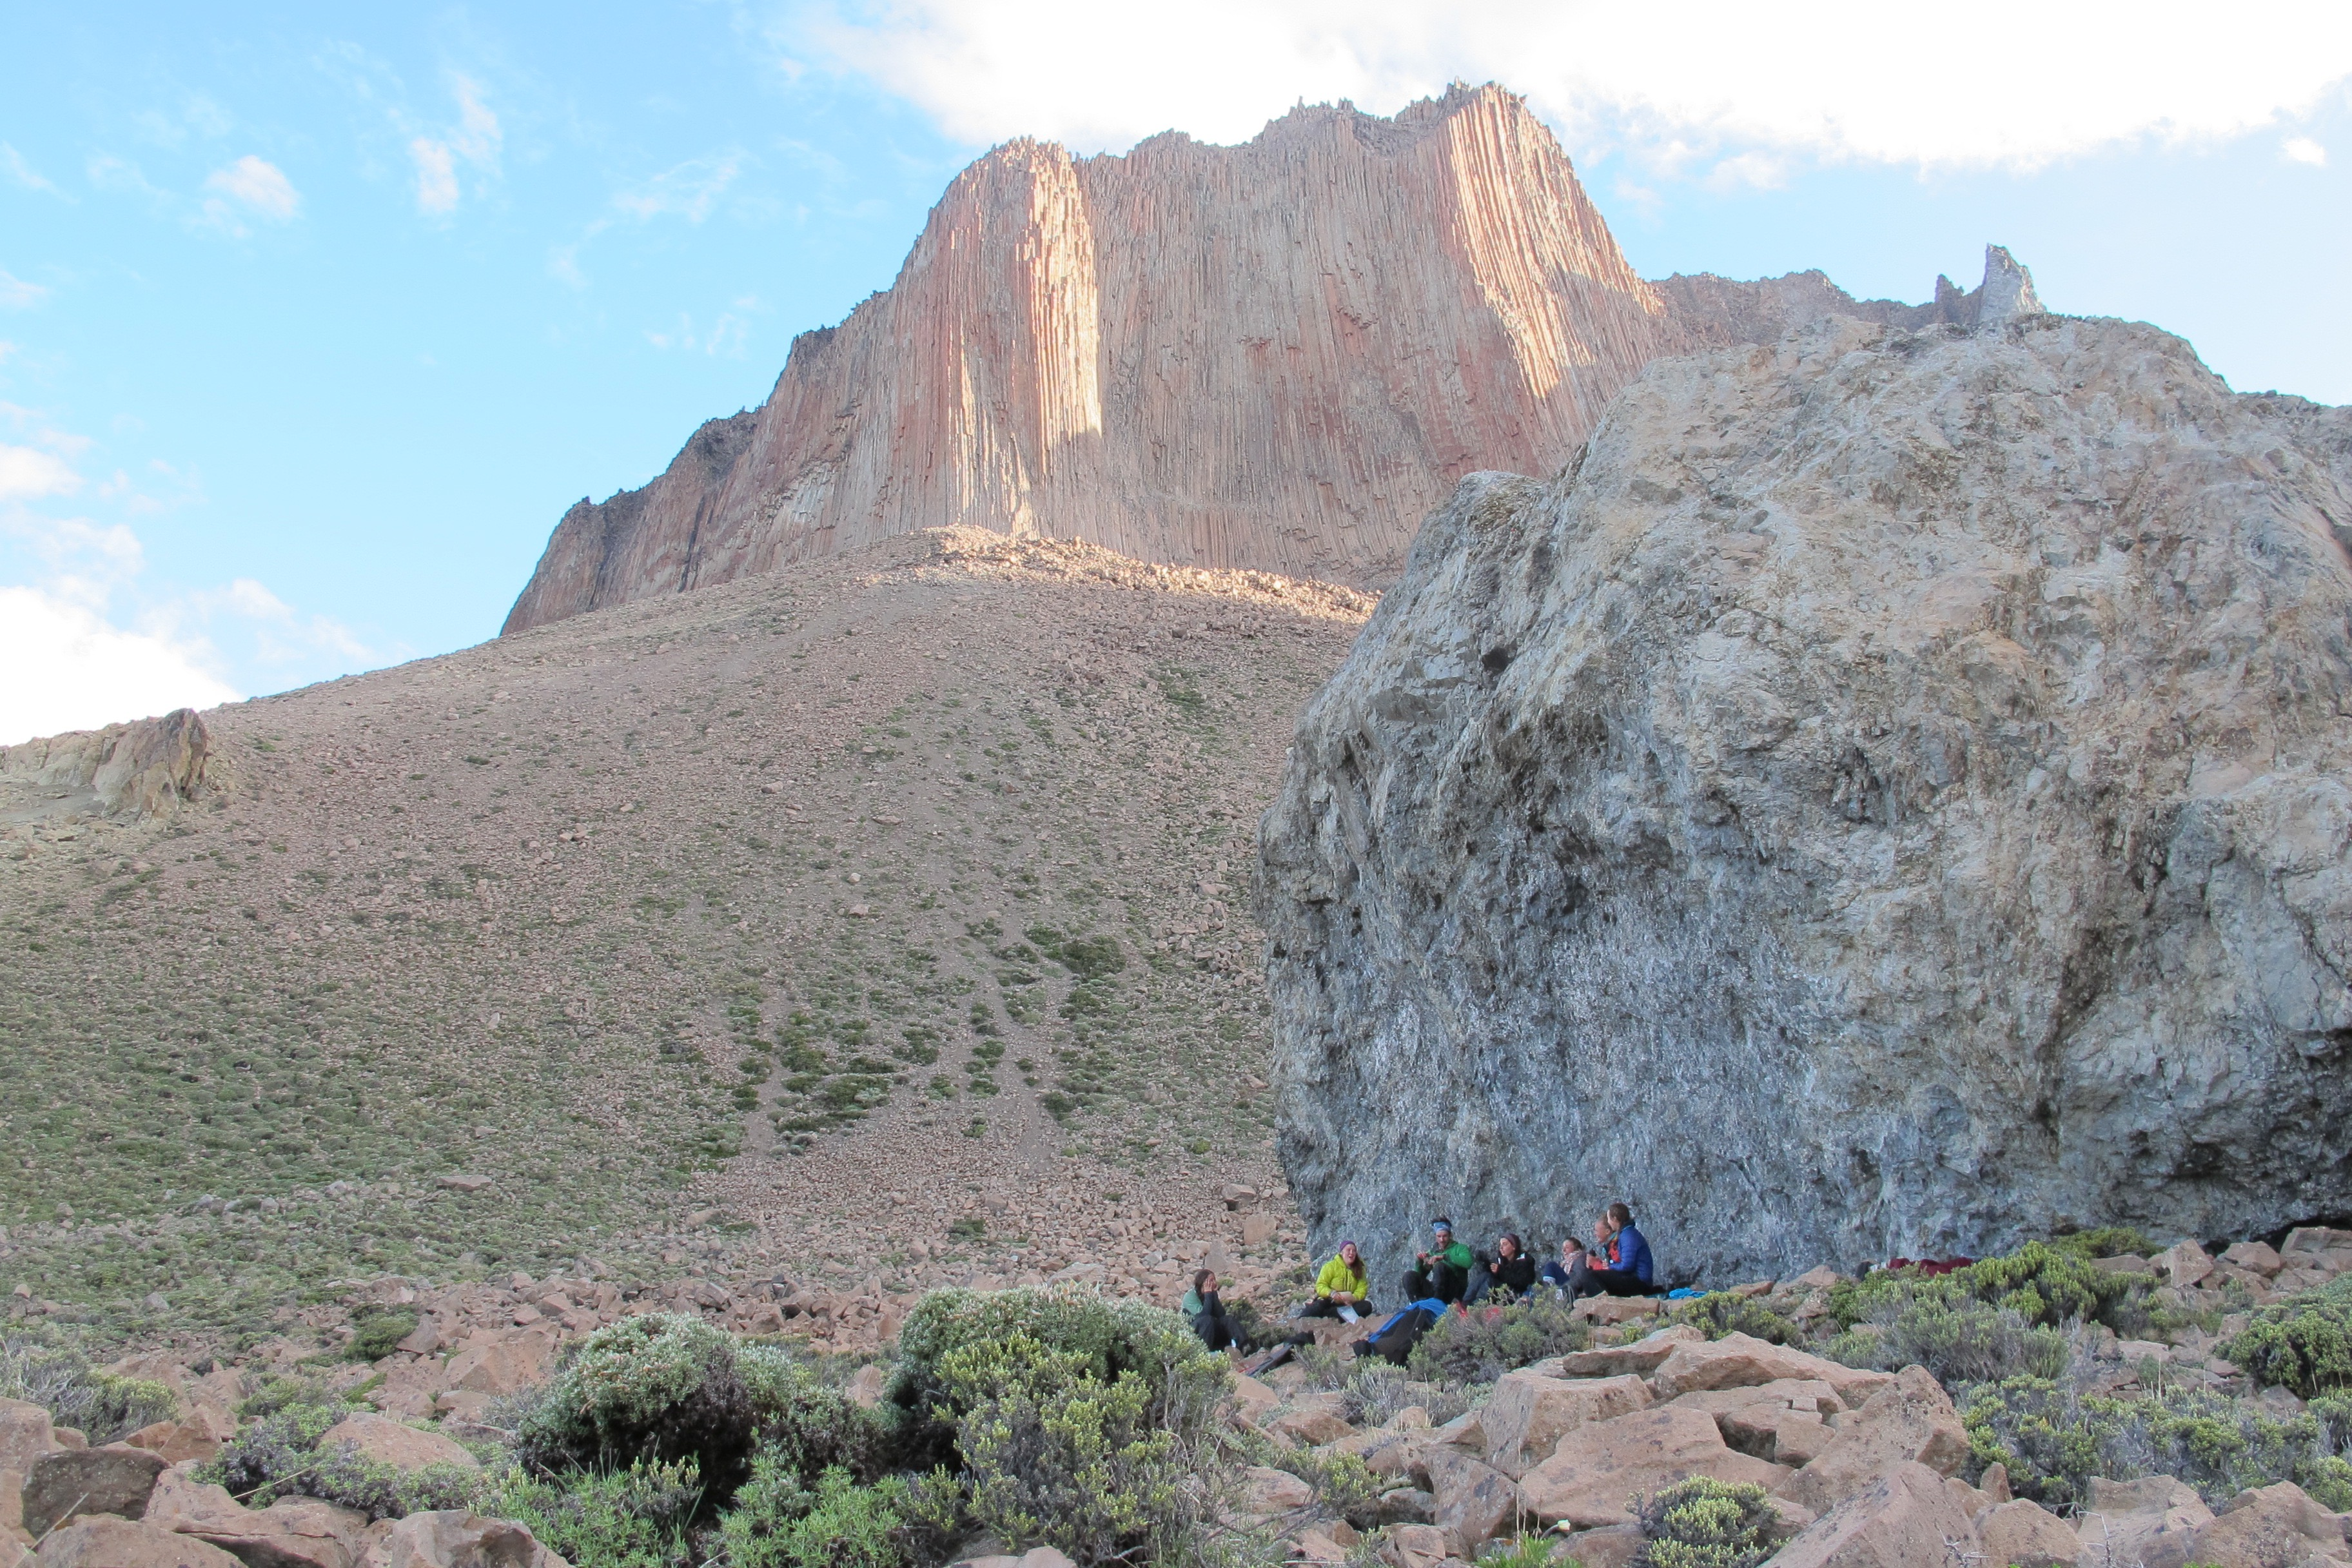 Gap Year Program - High Mountain Institute Gap: Climbing and Conservation in Patagonia and the American West  4